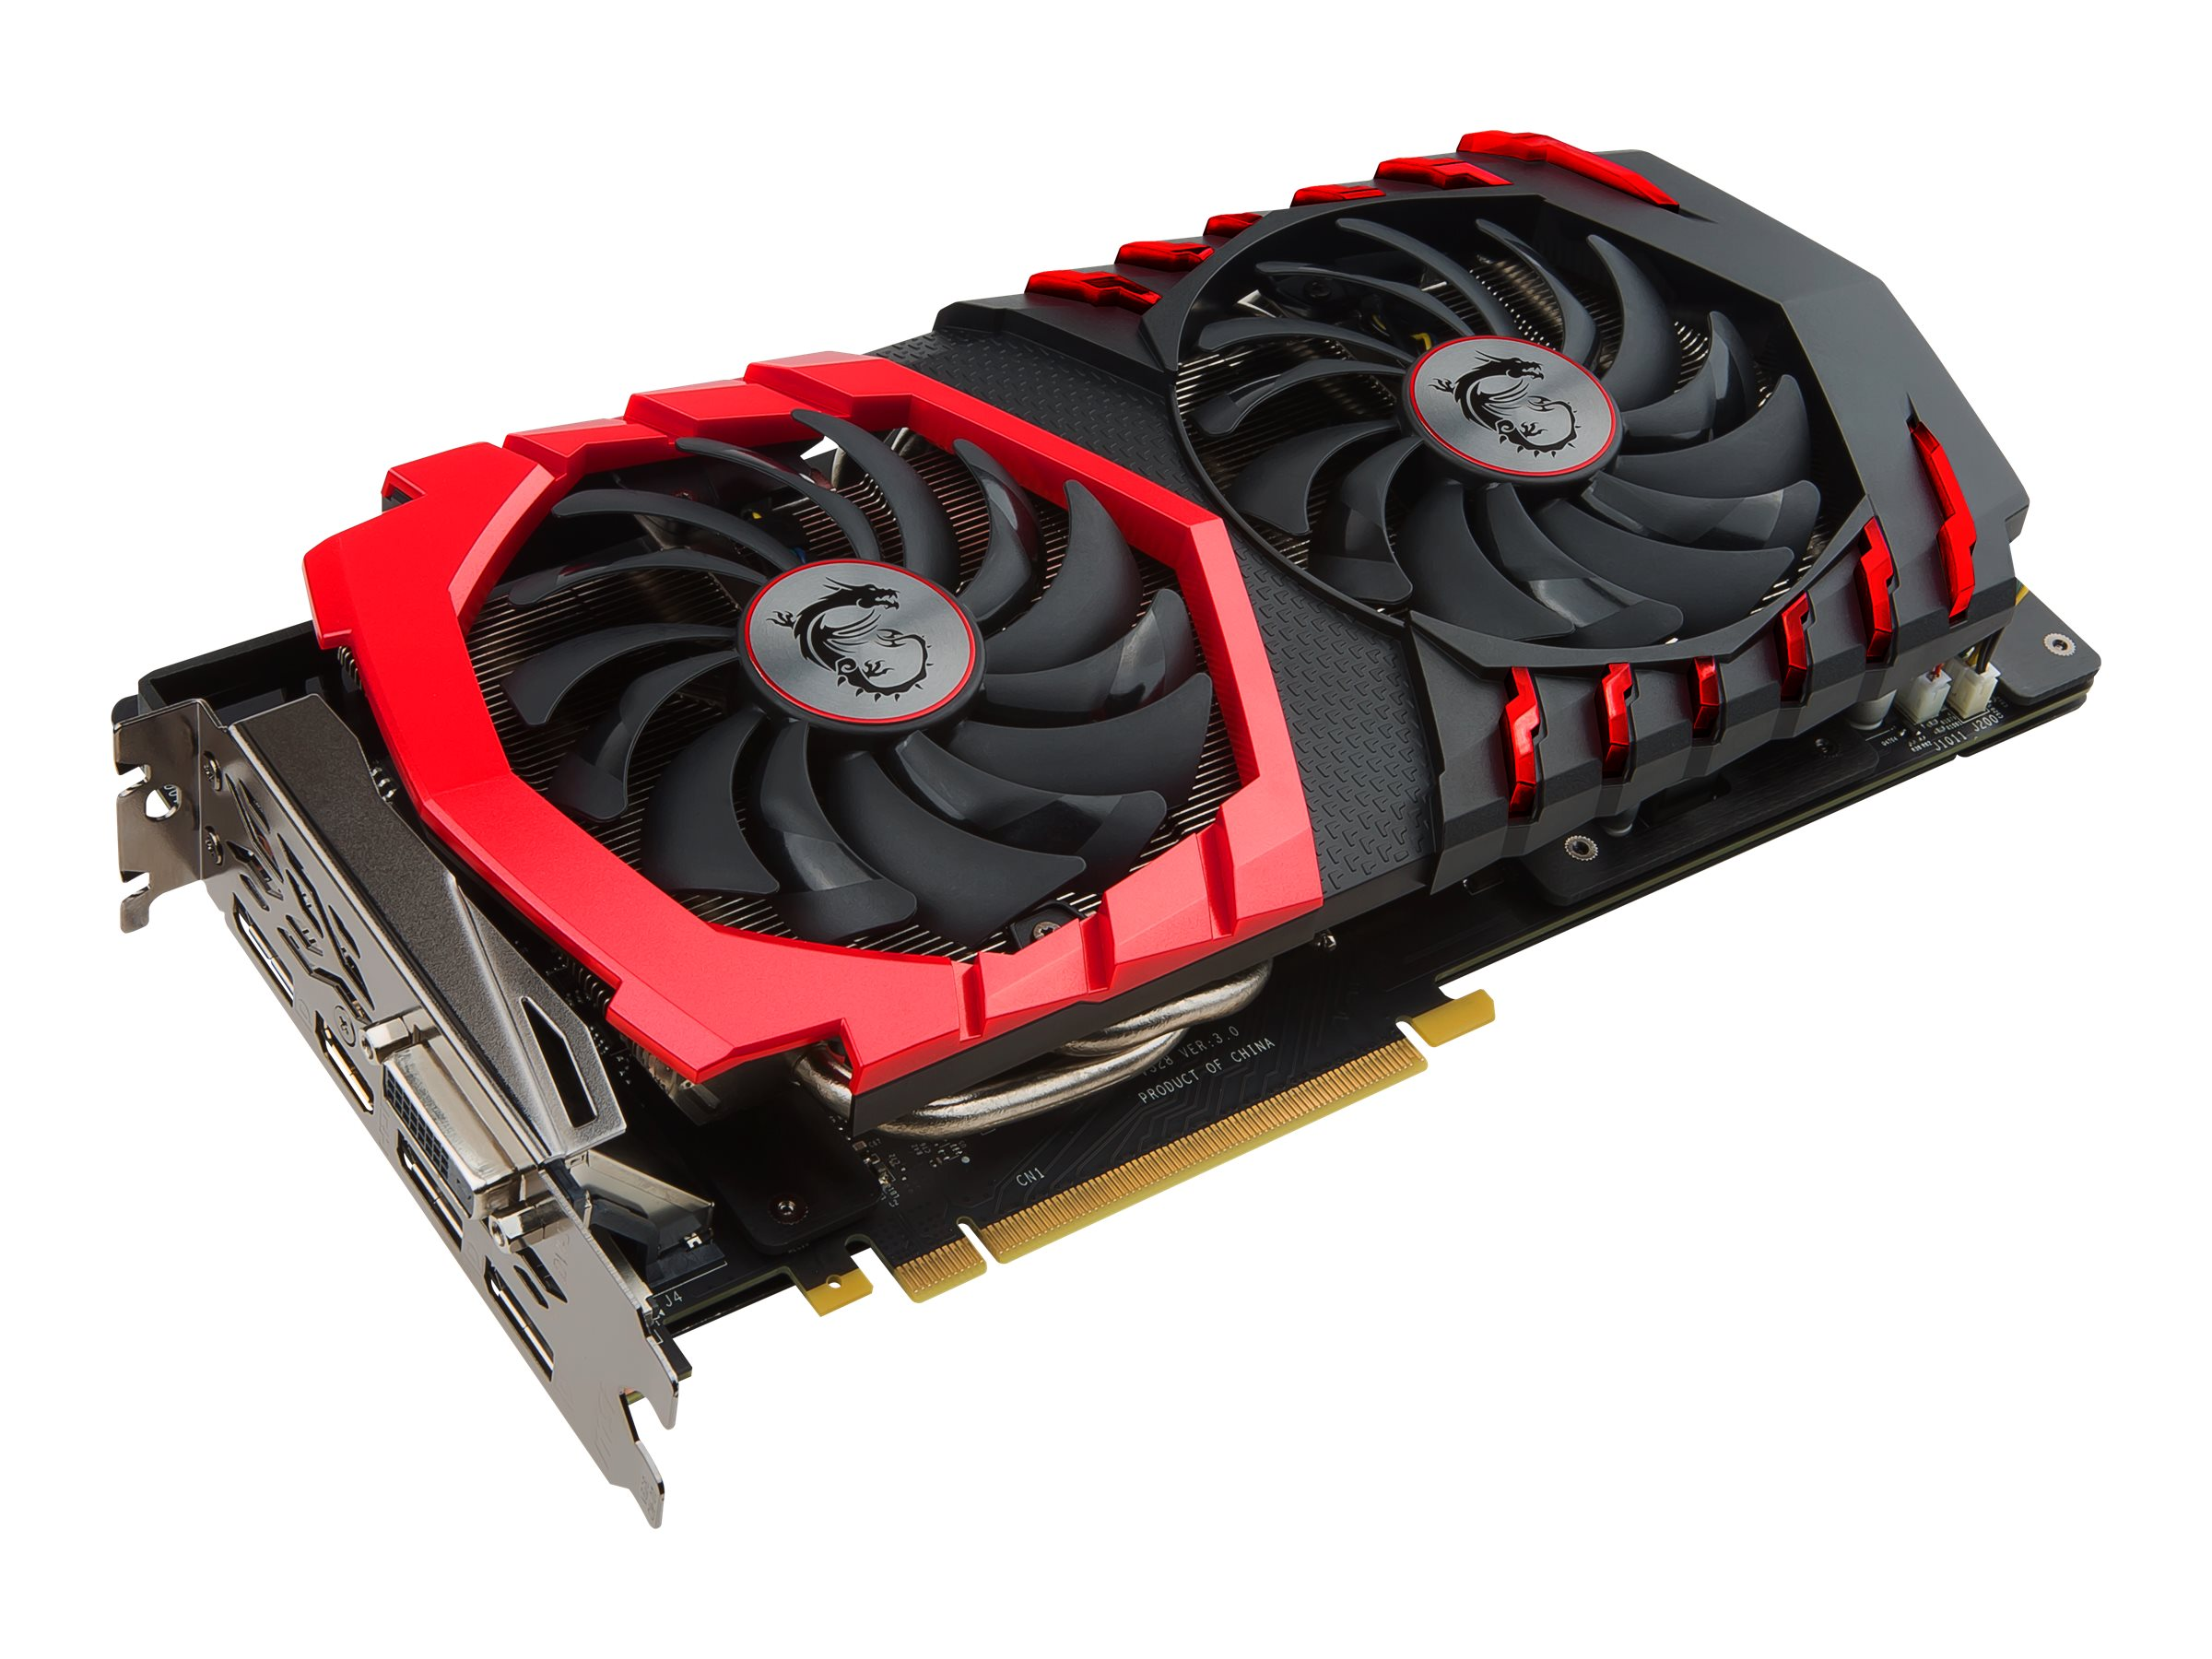 Microstar GeForce GTX 1060 PCIe 3.0 x16 Graphics Card, 3GB GDDR5, GTX 1060 GAMING X 3G